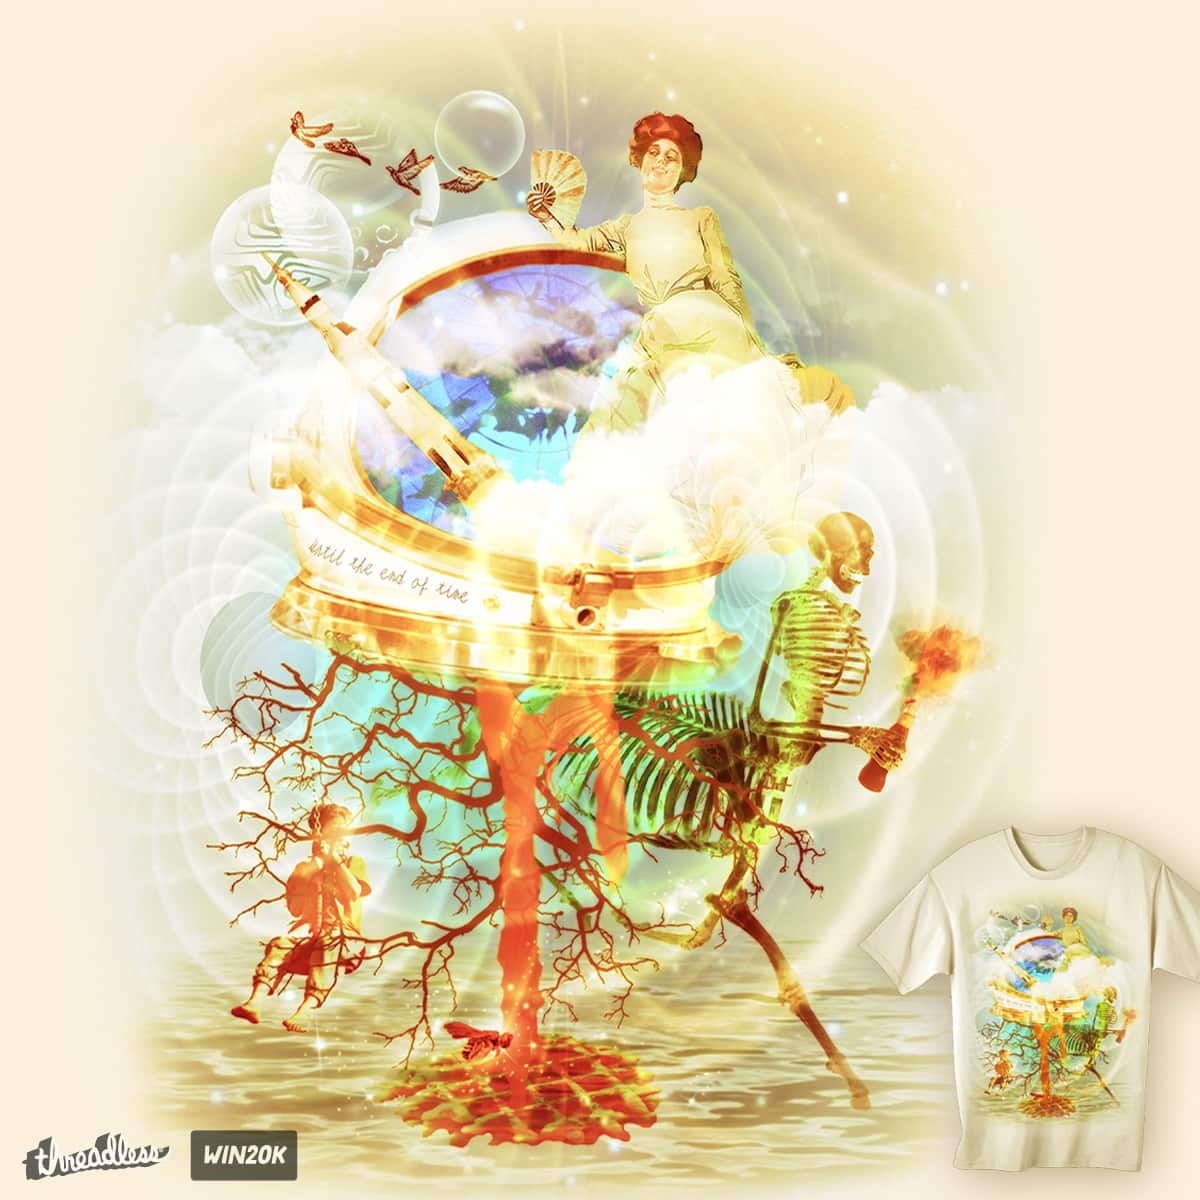 Until the End of Time by ArTrOcItY on Threadless